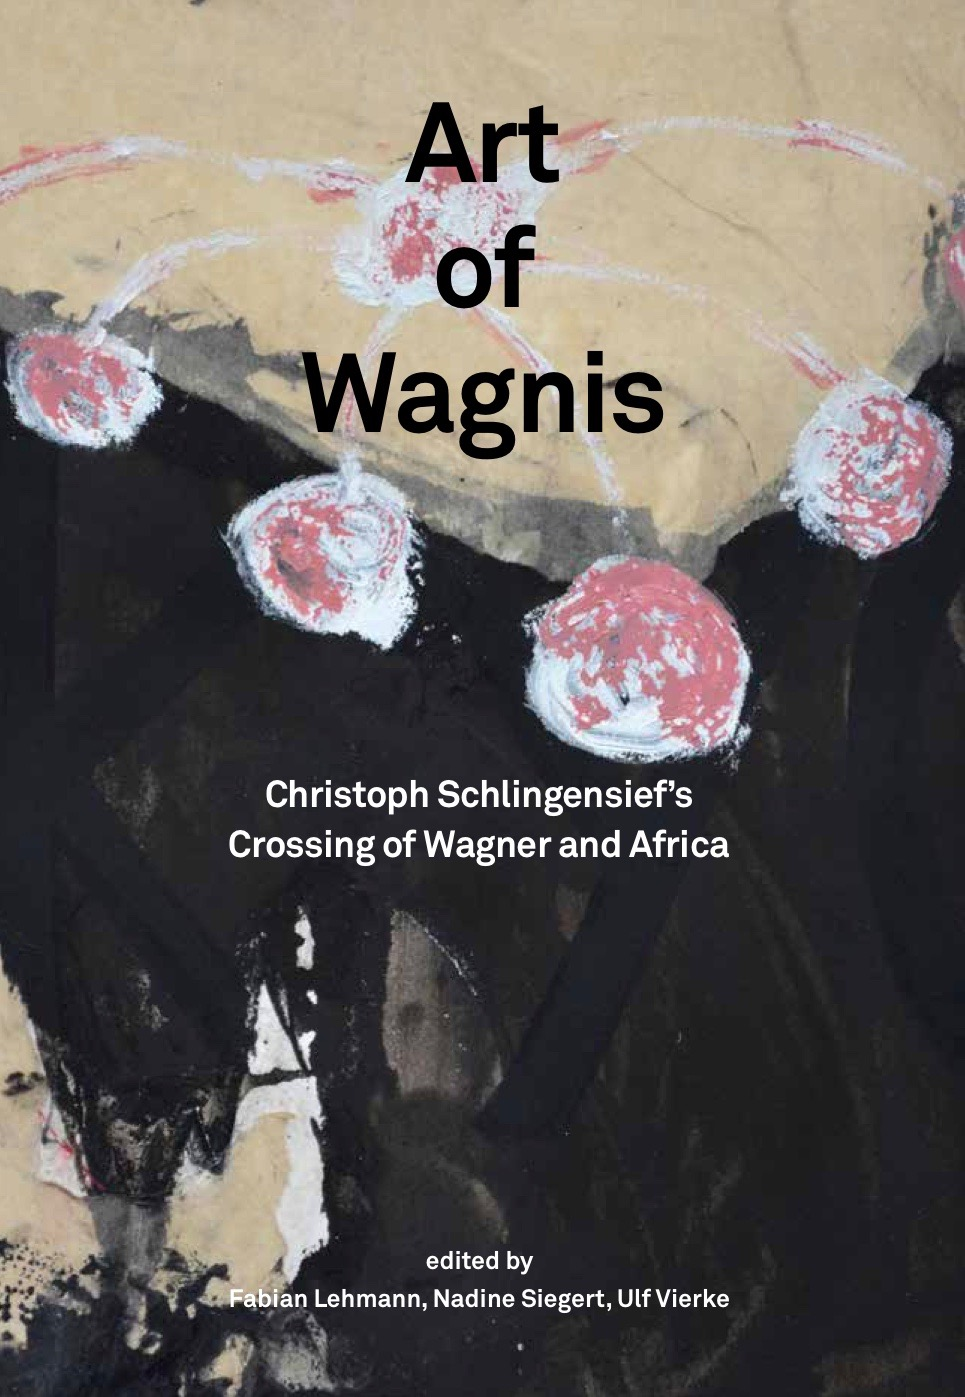 Art_of_Wagnis_Cover